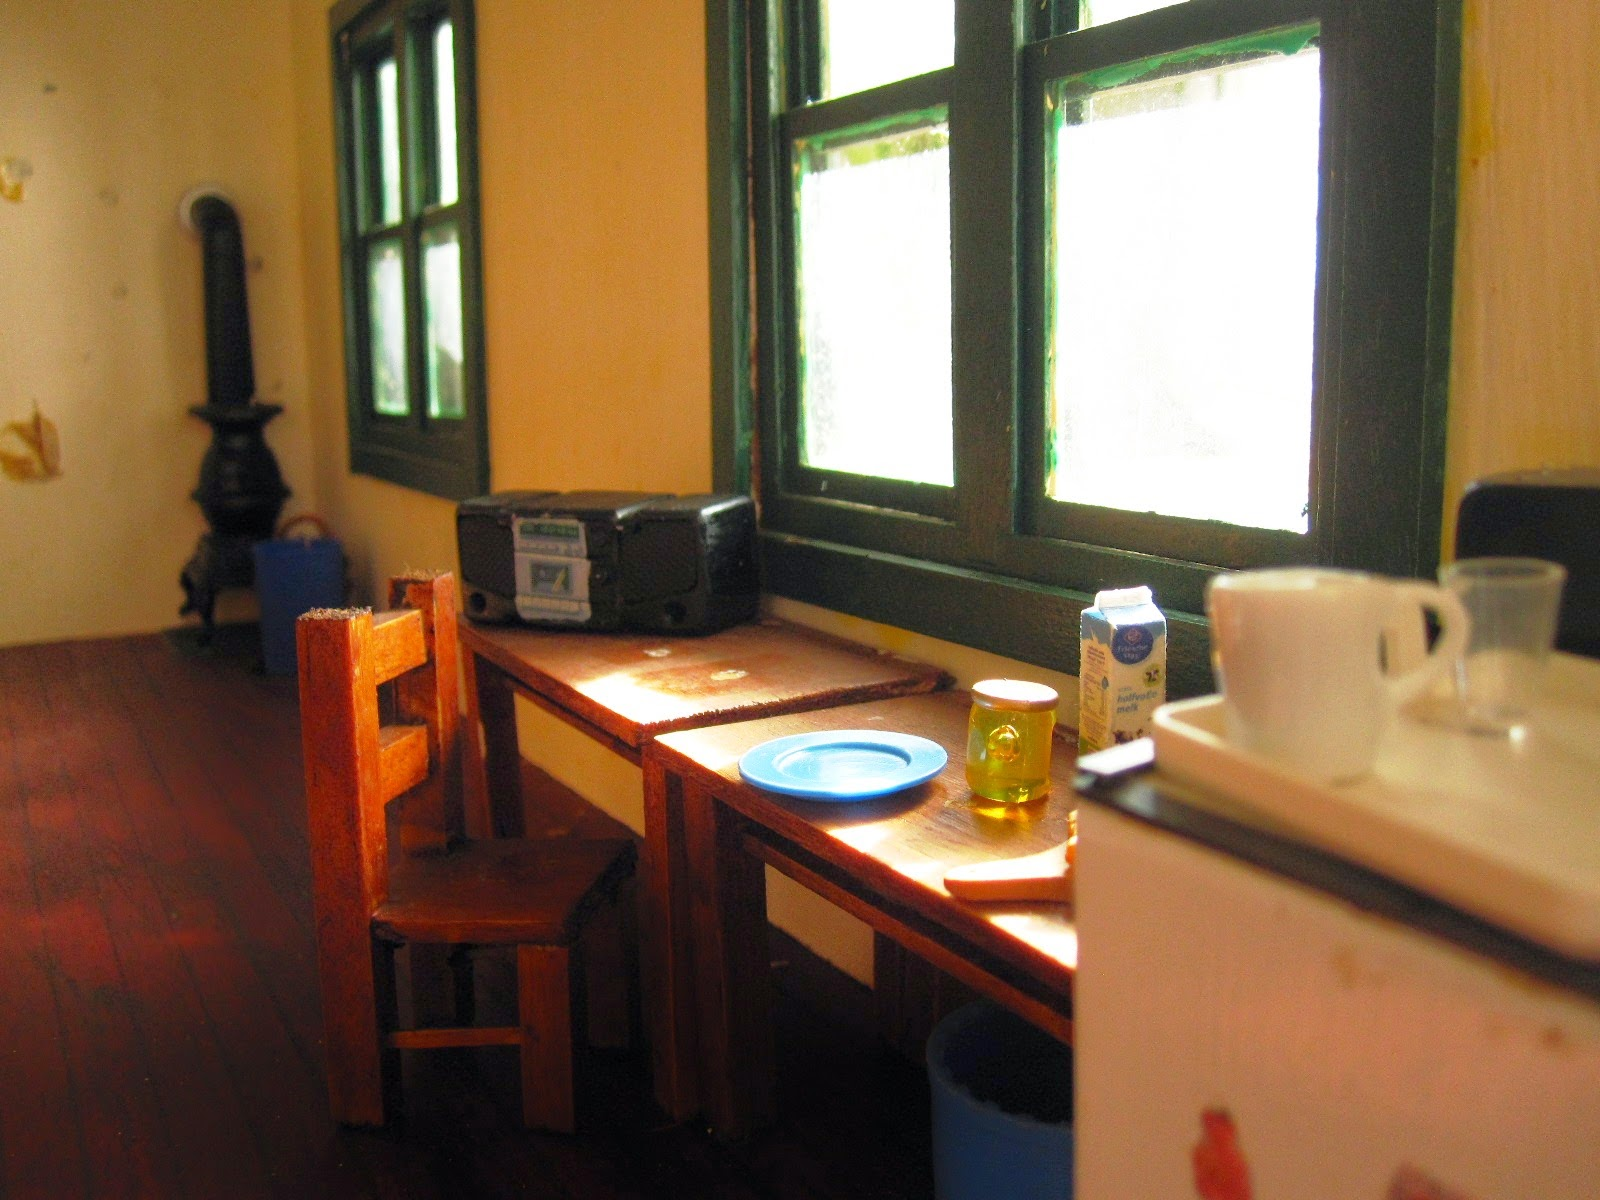 Miniature school house interior with breakfast set up on desks under a sunny window.